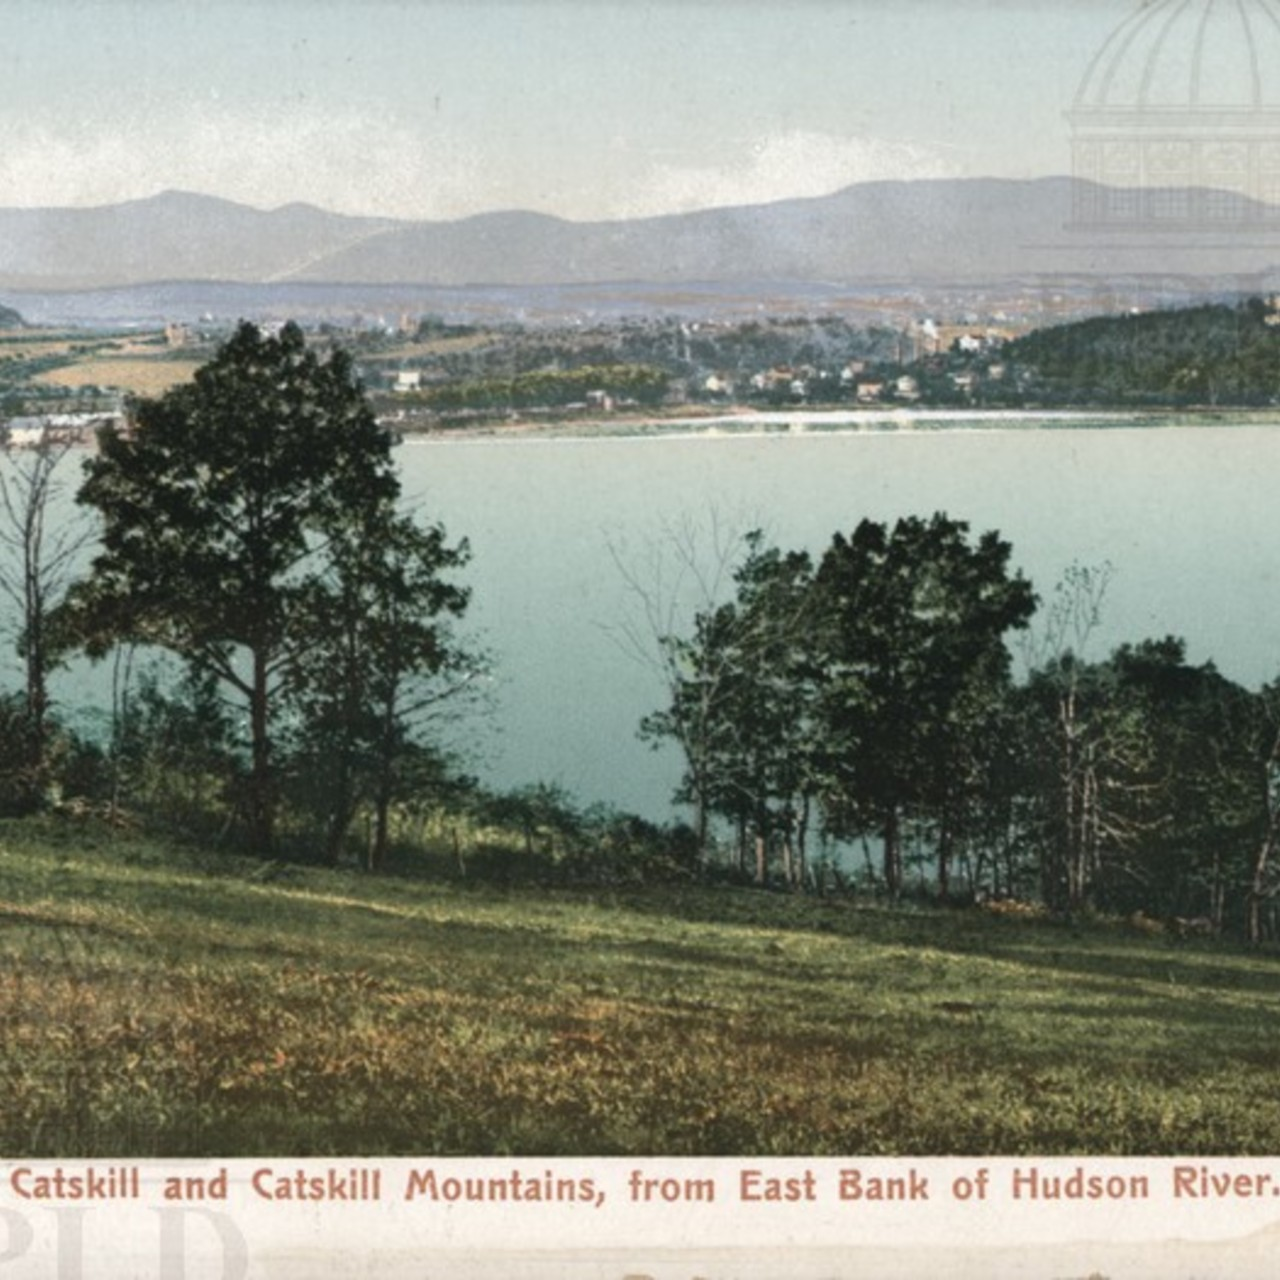 Catskill & Catskill Mountains, from East Bank of Hudson River